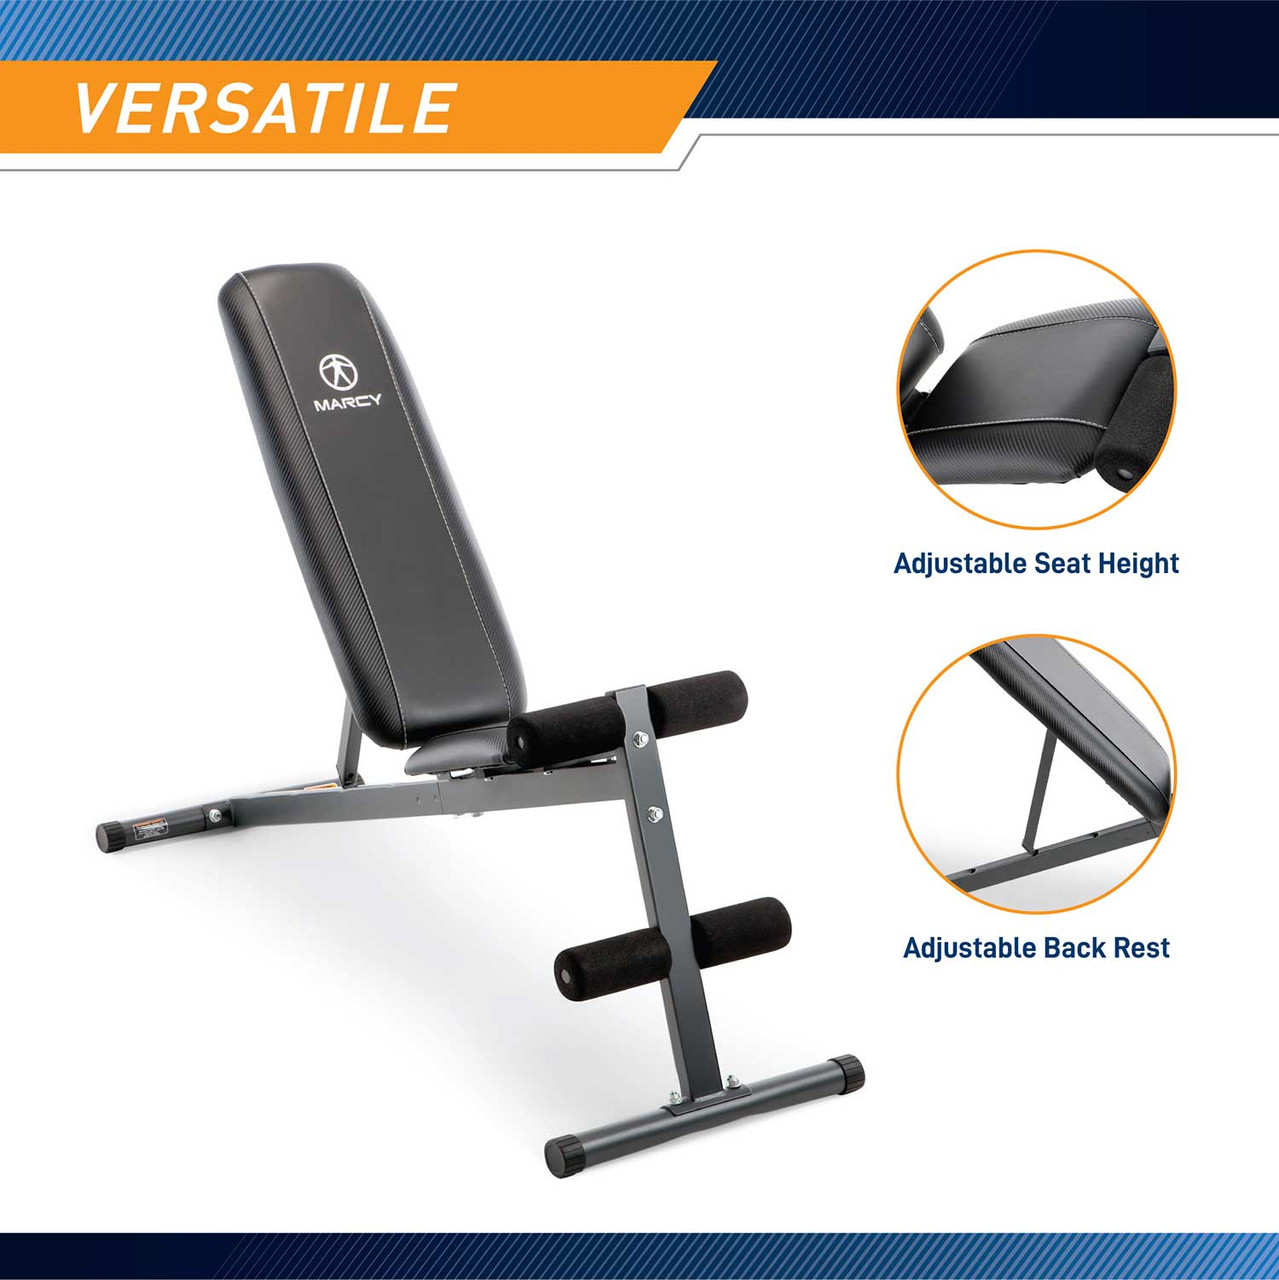 The Marcy Utility Bench SB-261W by Marcy is conveniently adjustable to vary your workout